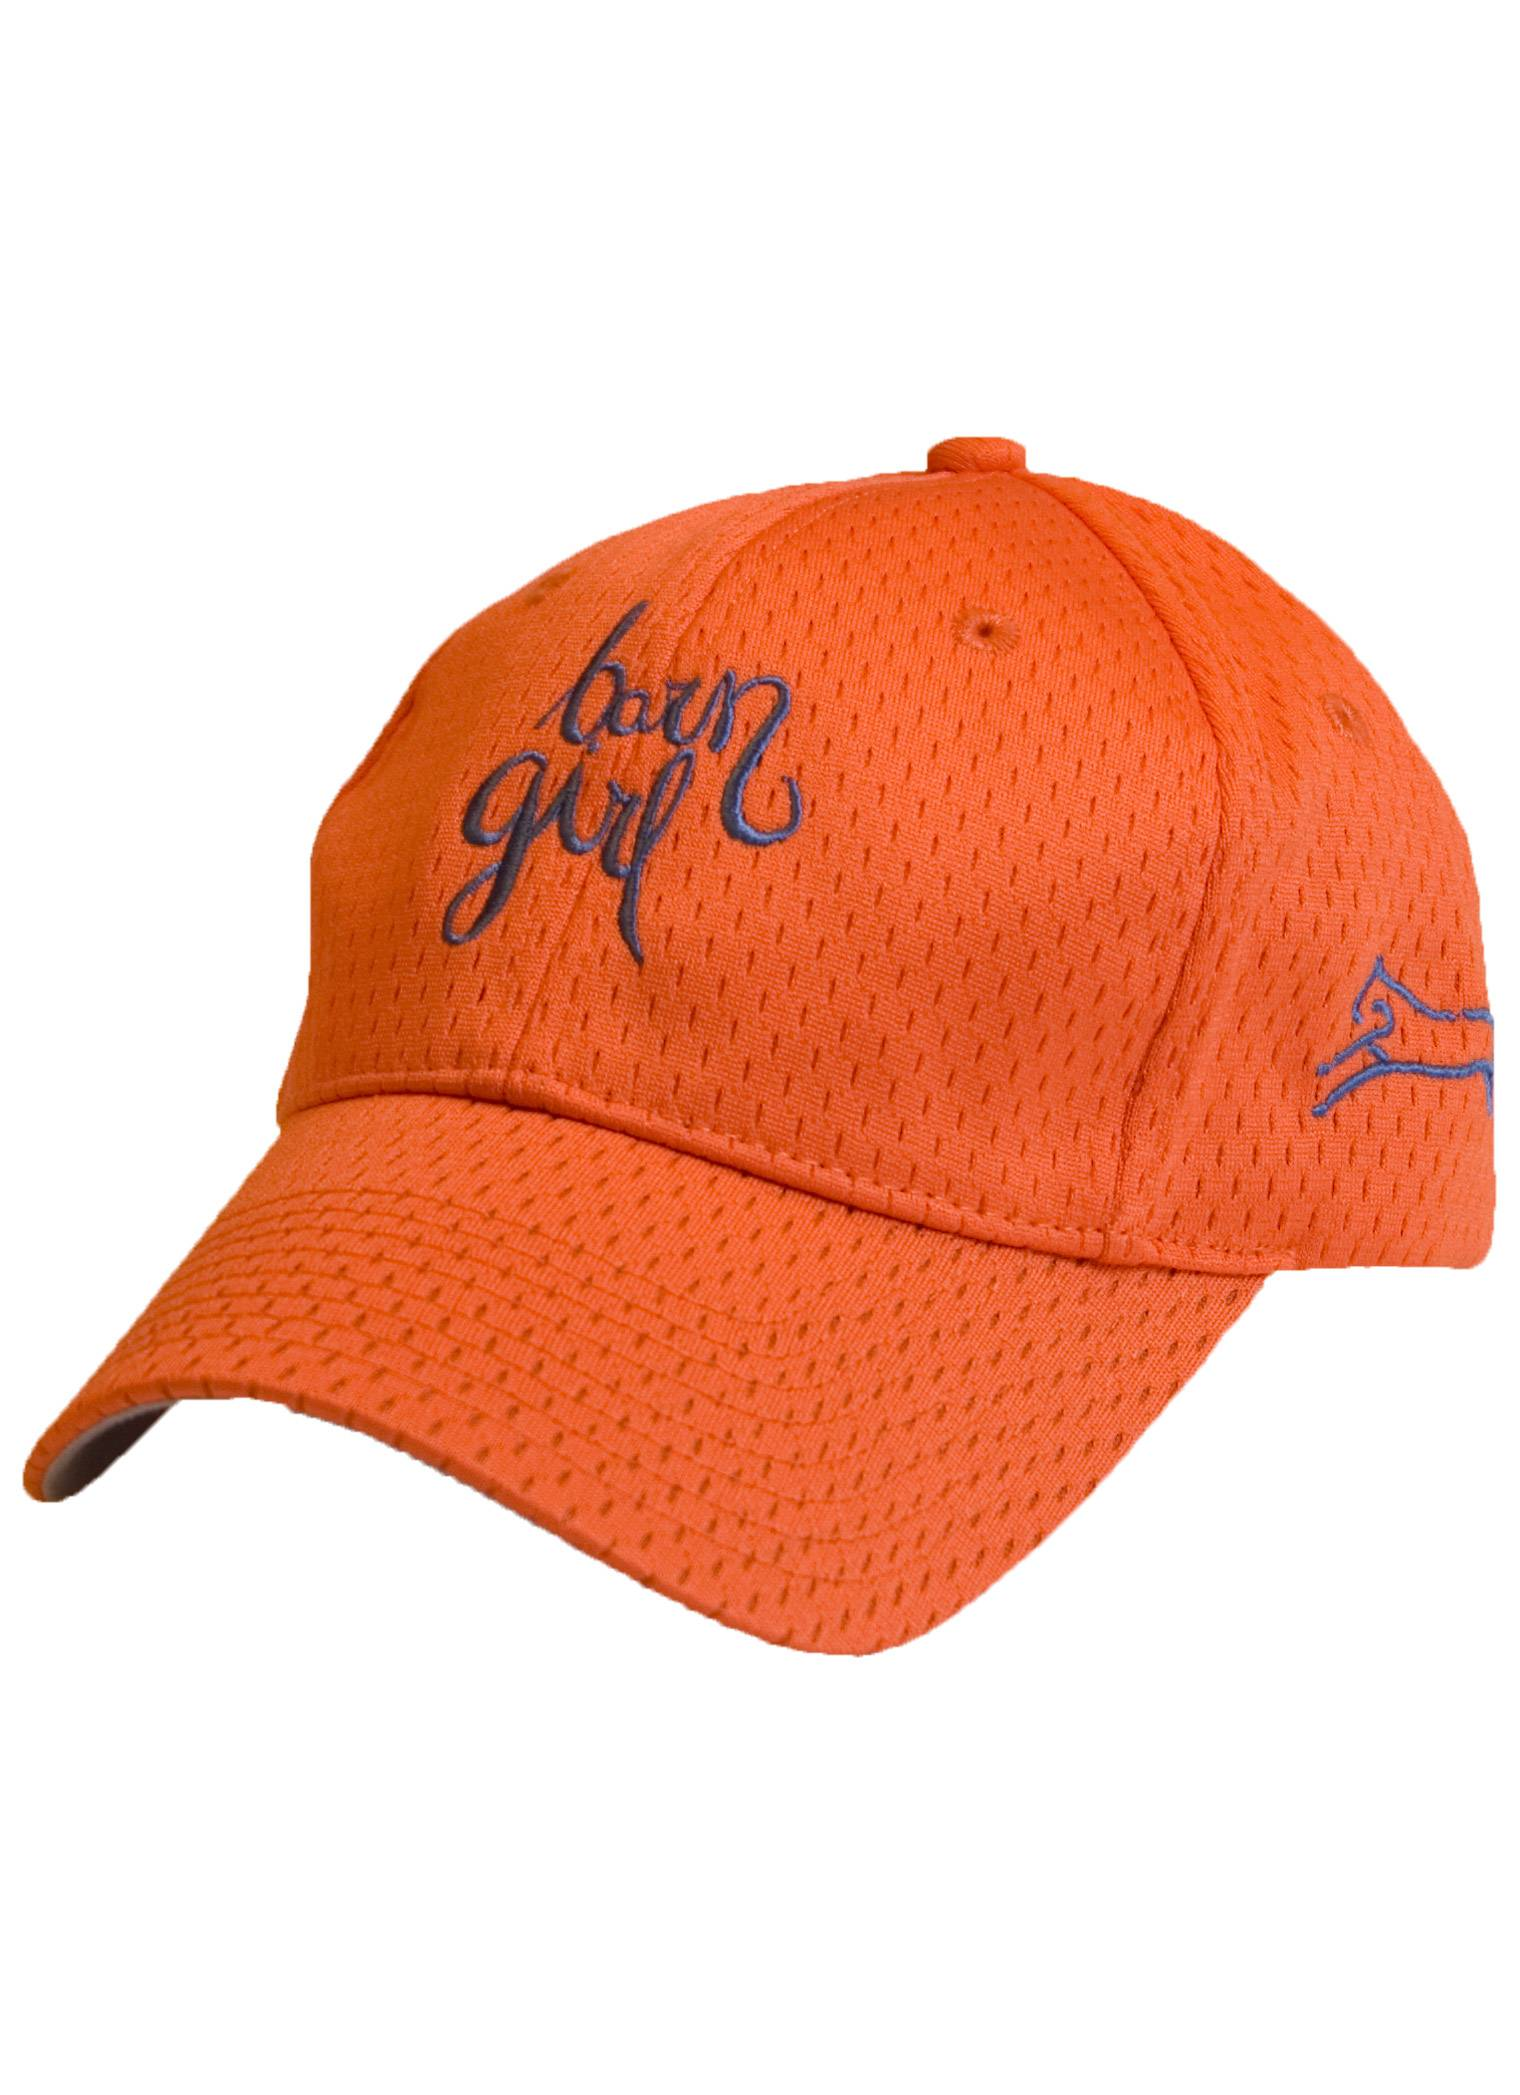 Stirrups Barn Girl Embroidered Wicking Adjustable Cap Youth